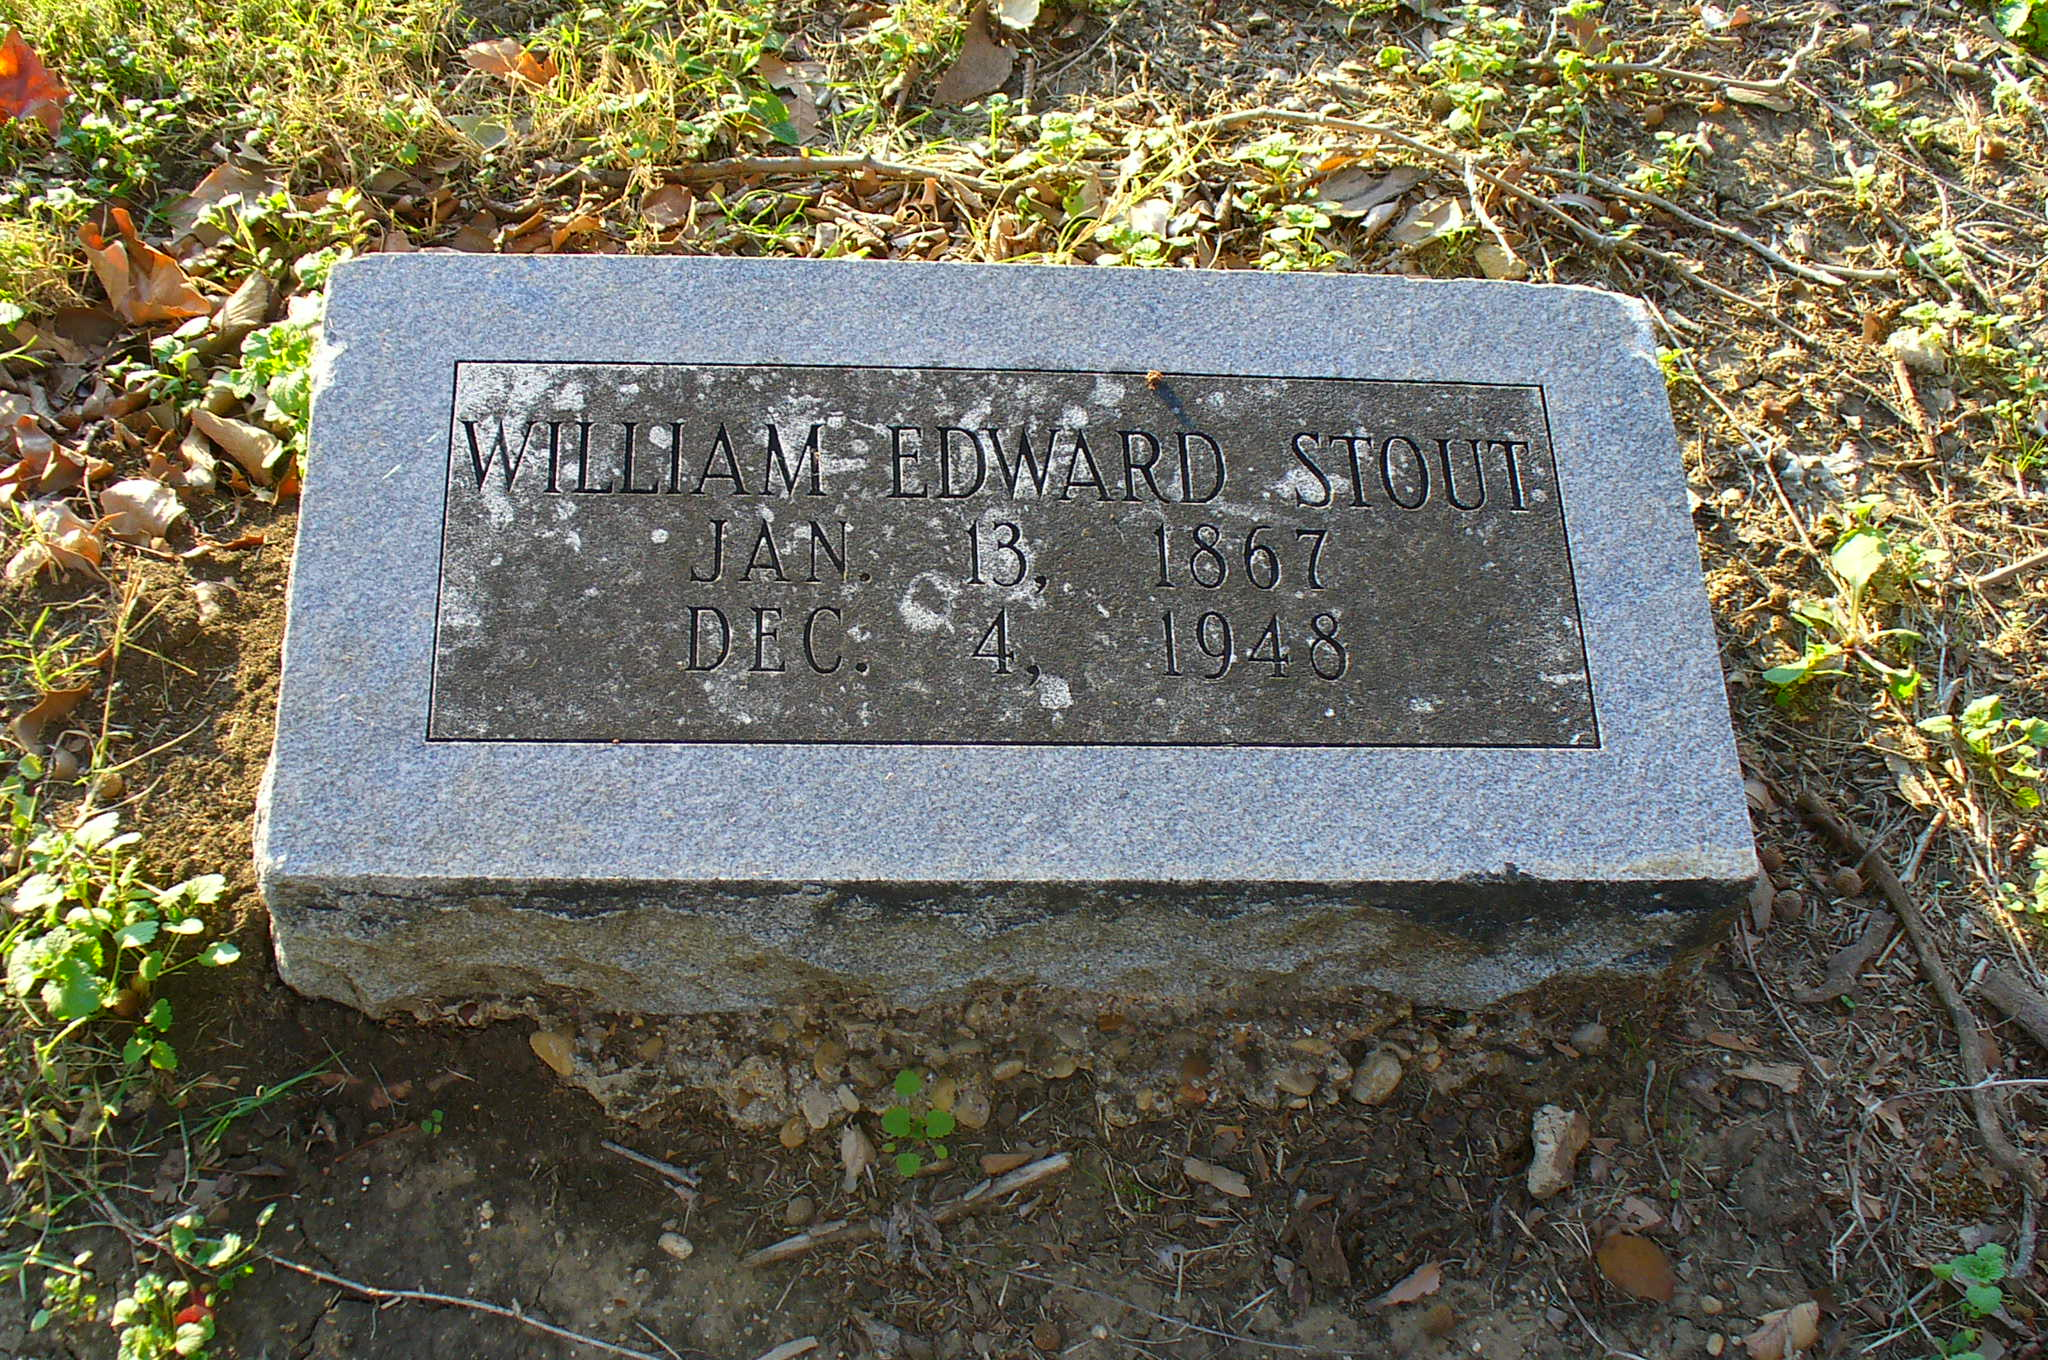 William Edward Stout